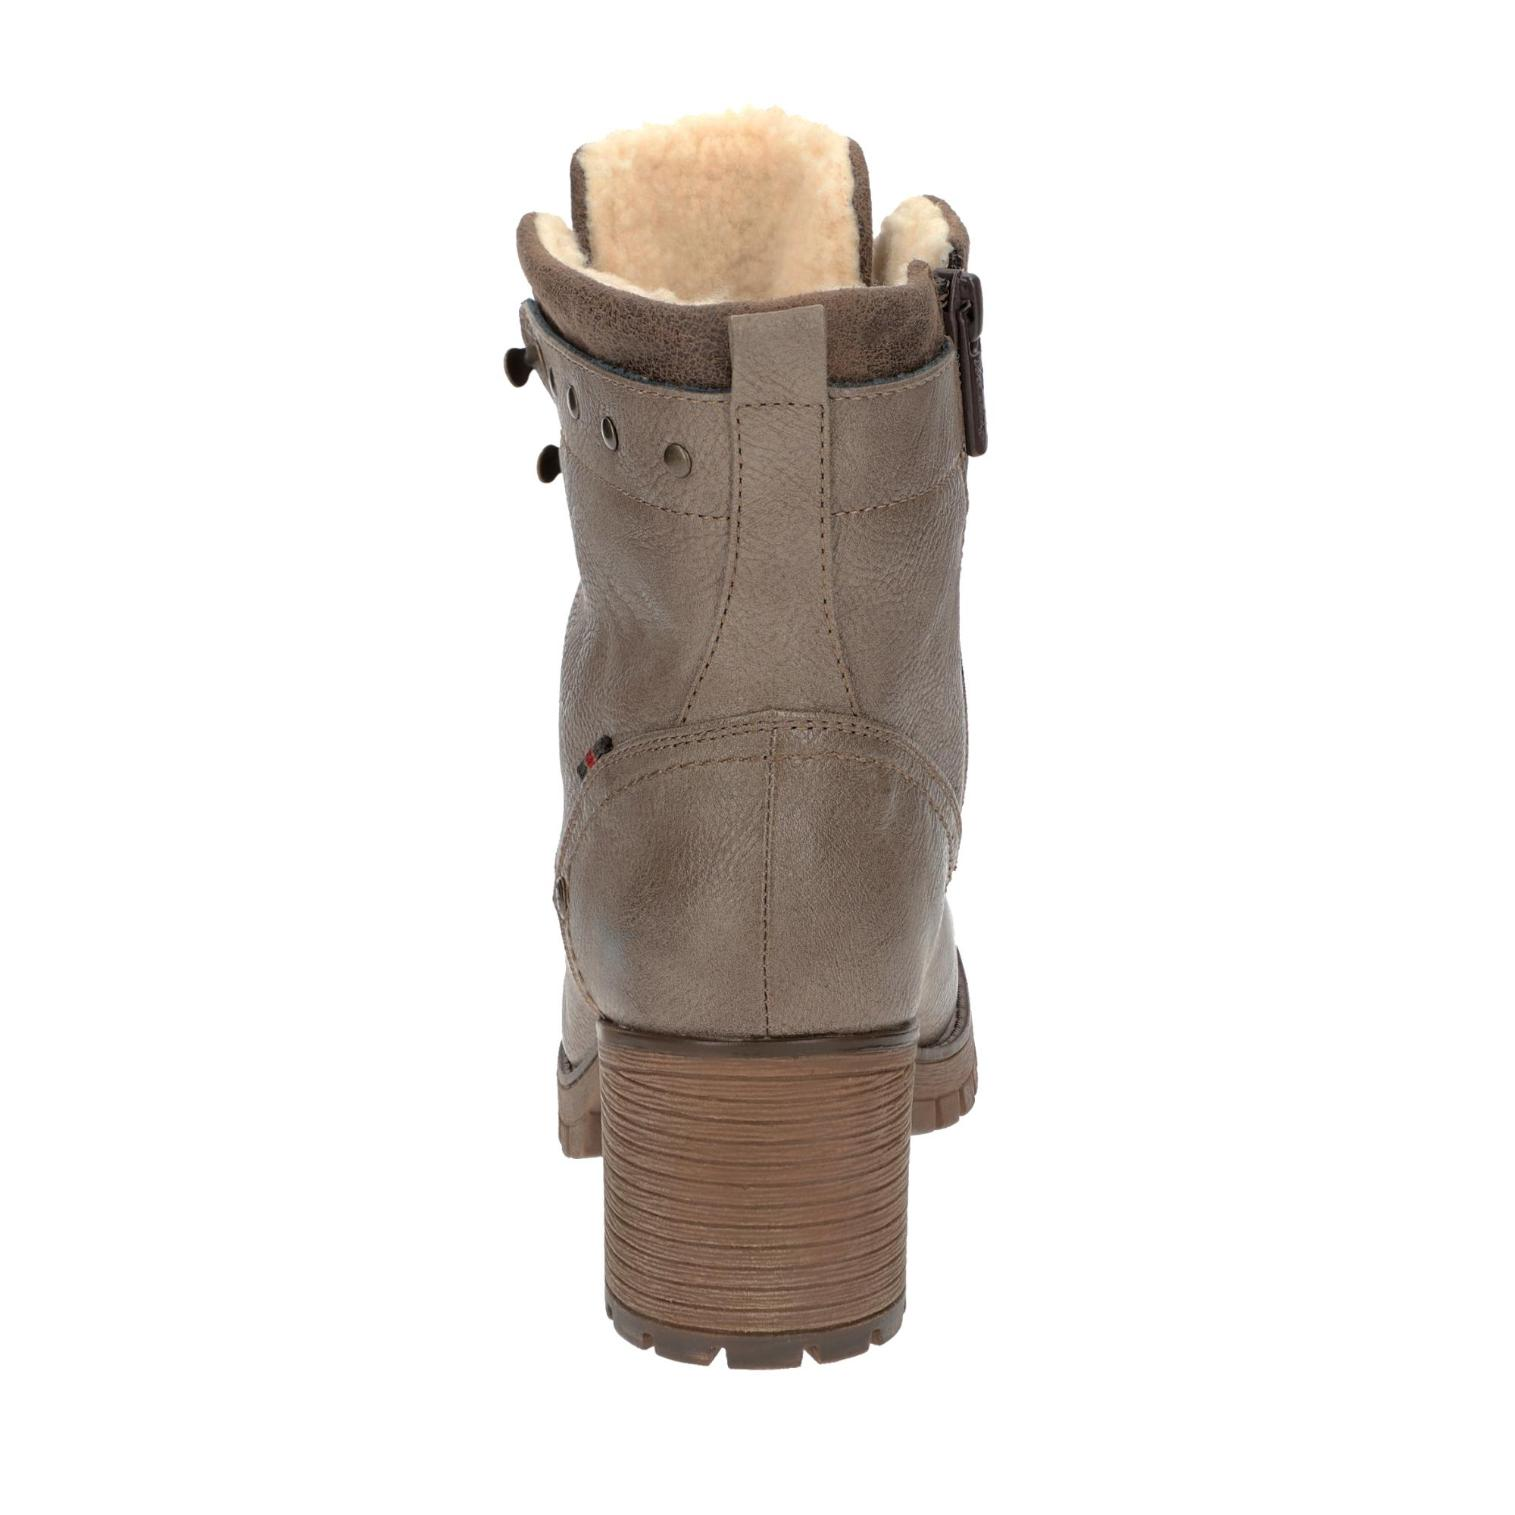 Mustang Boots in Farbe taupe taupe taupe günstig online kaufen 0bab17